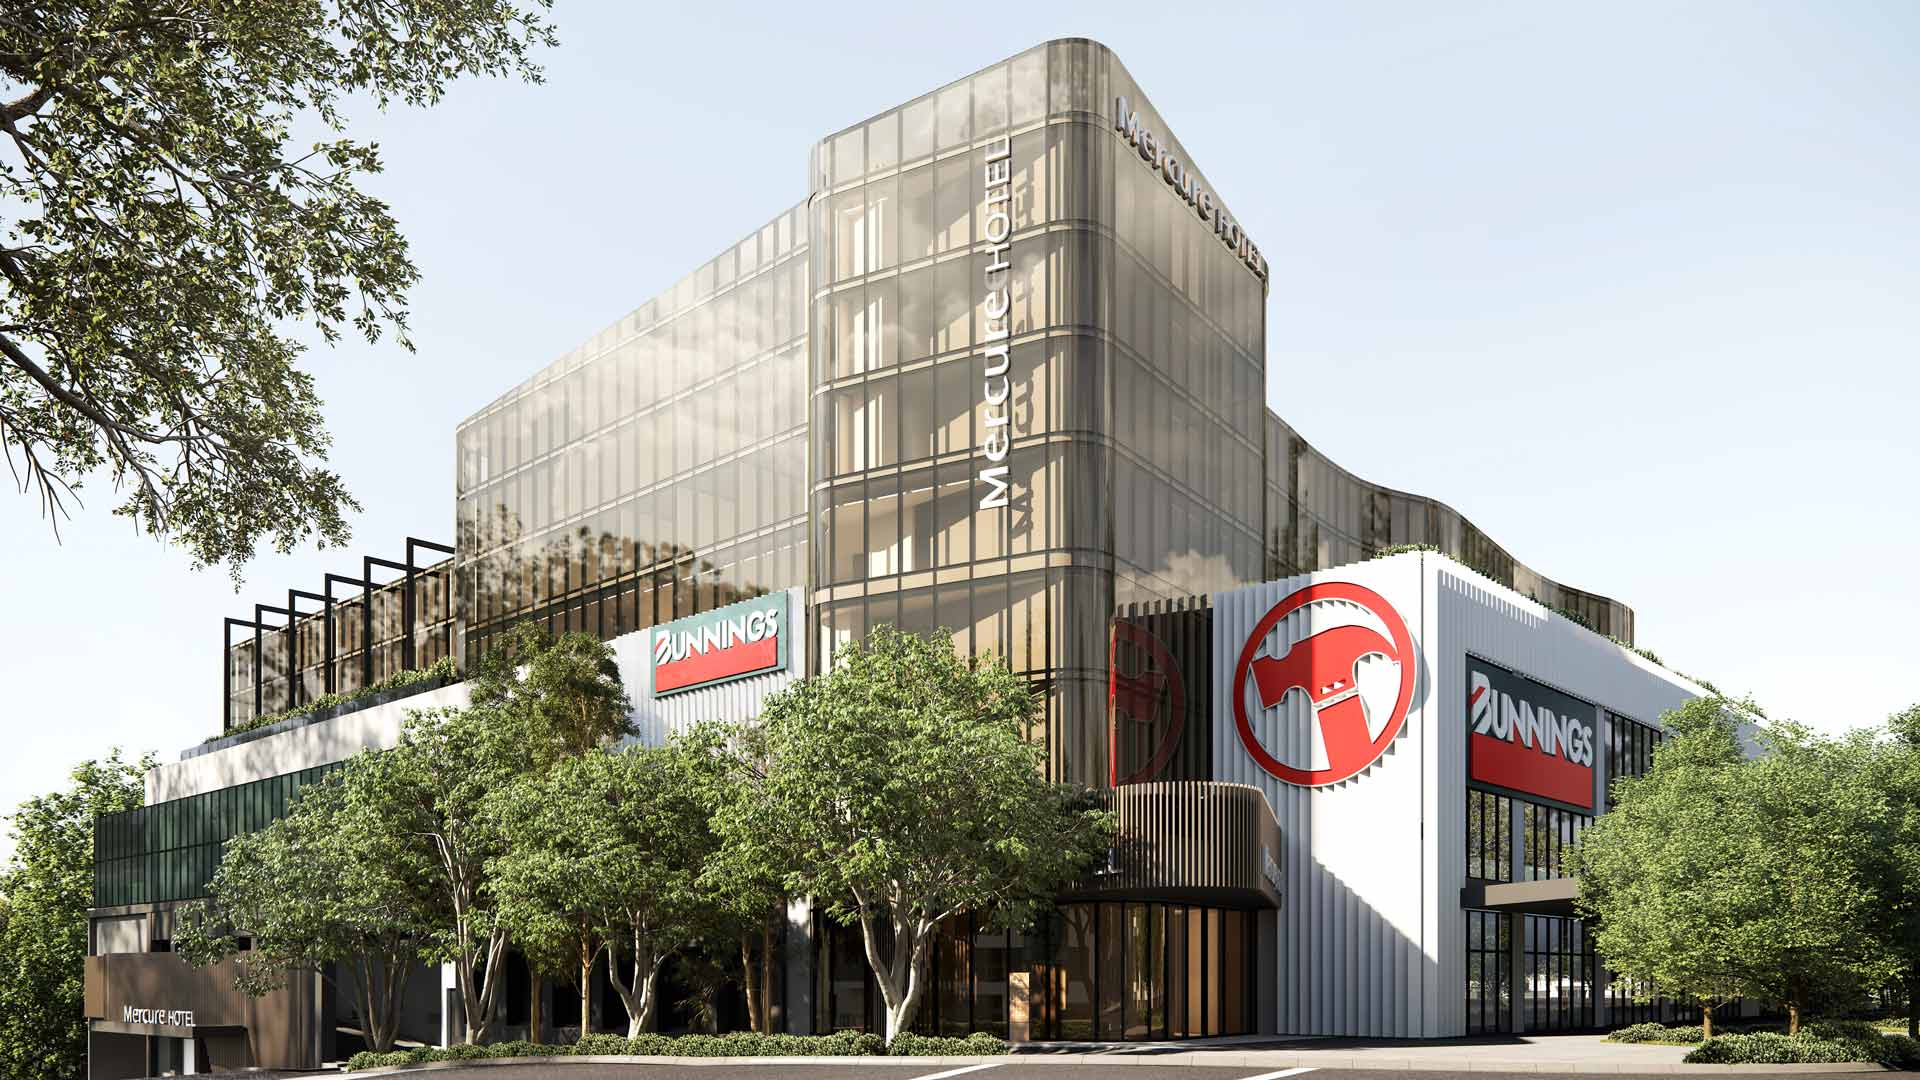 Melbourne Is Getting a New Hotel Above a Bunnings So You Can Rise and Snag